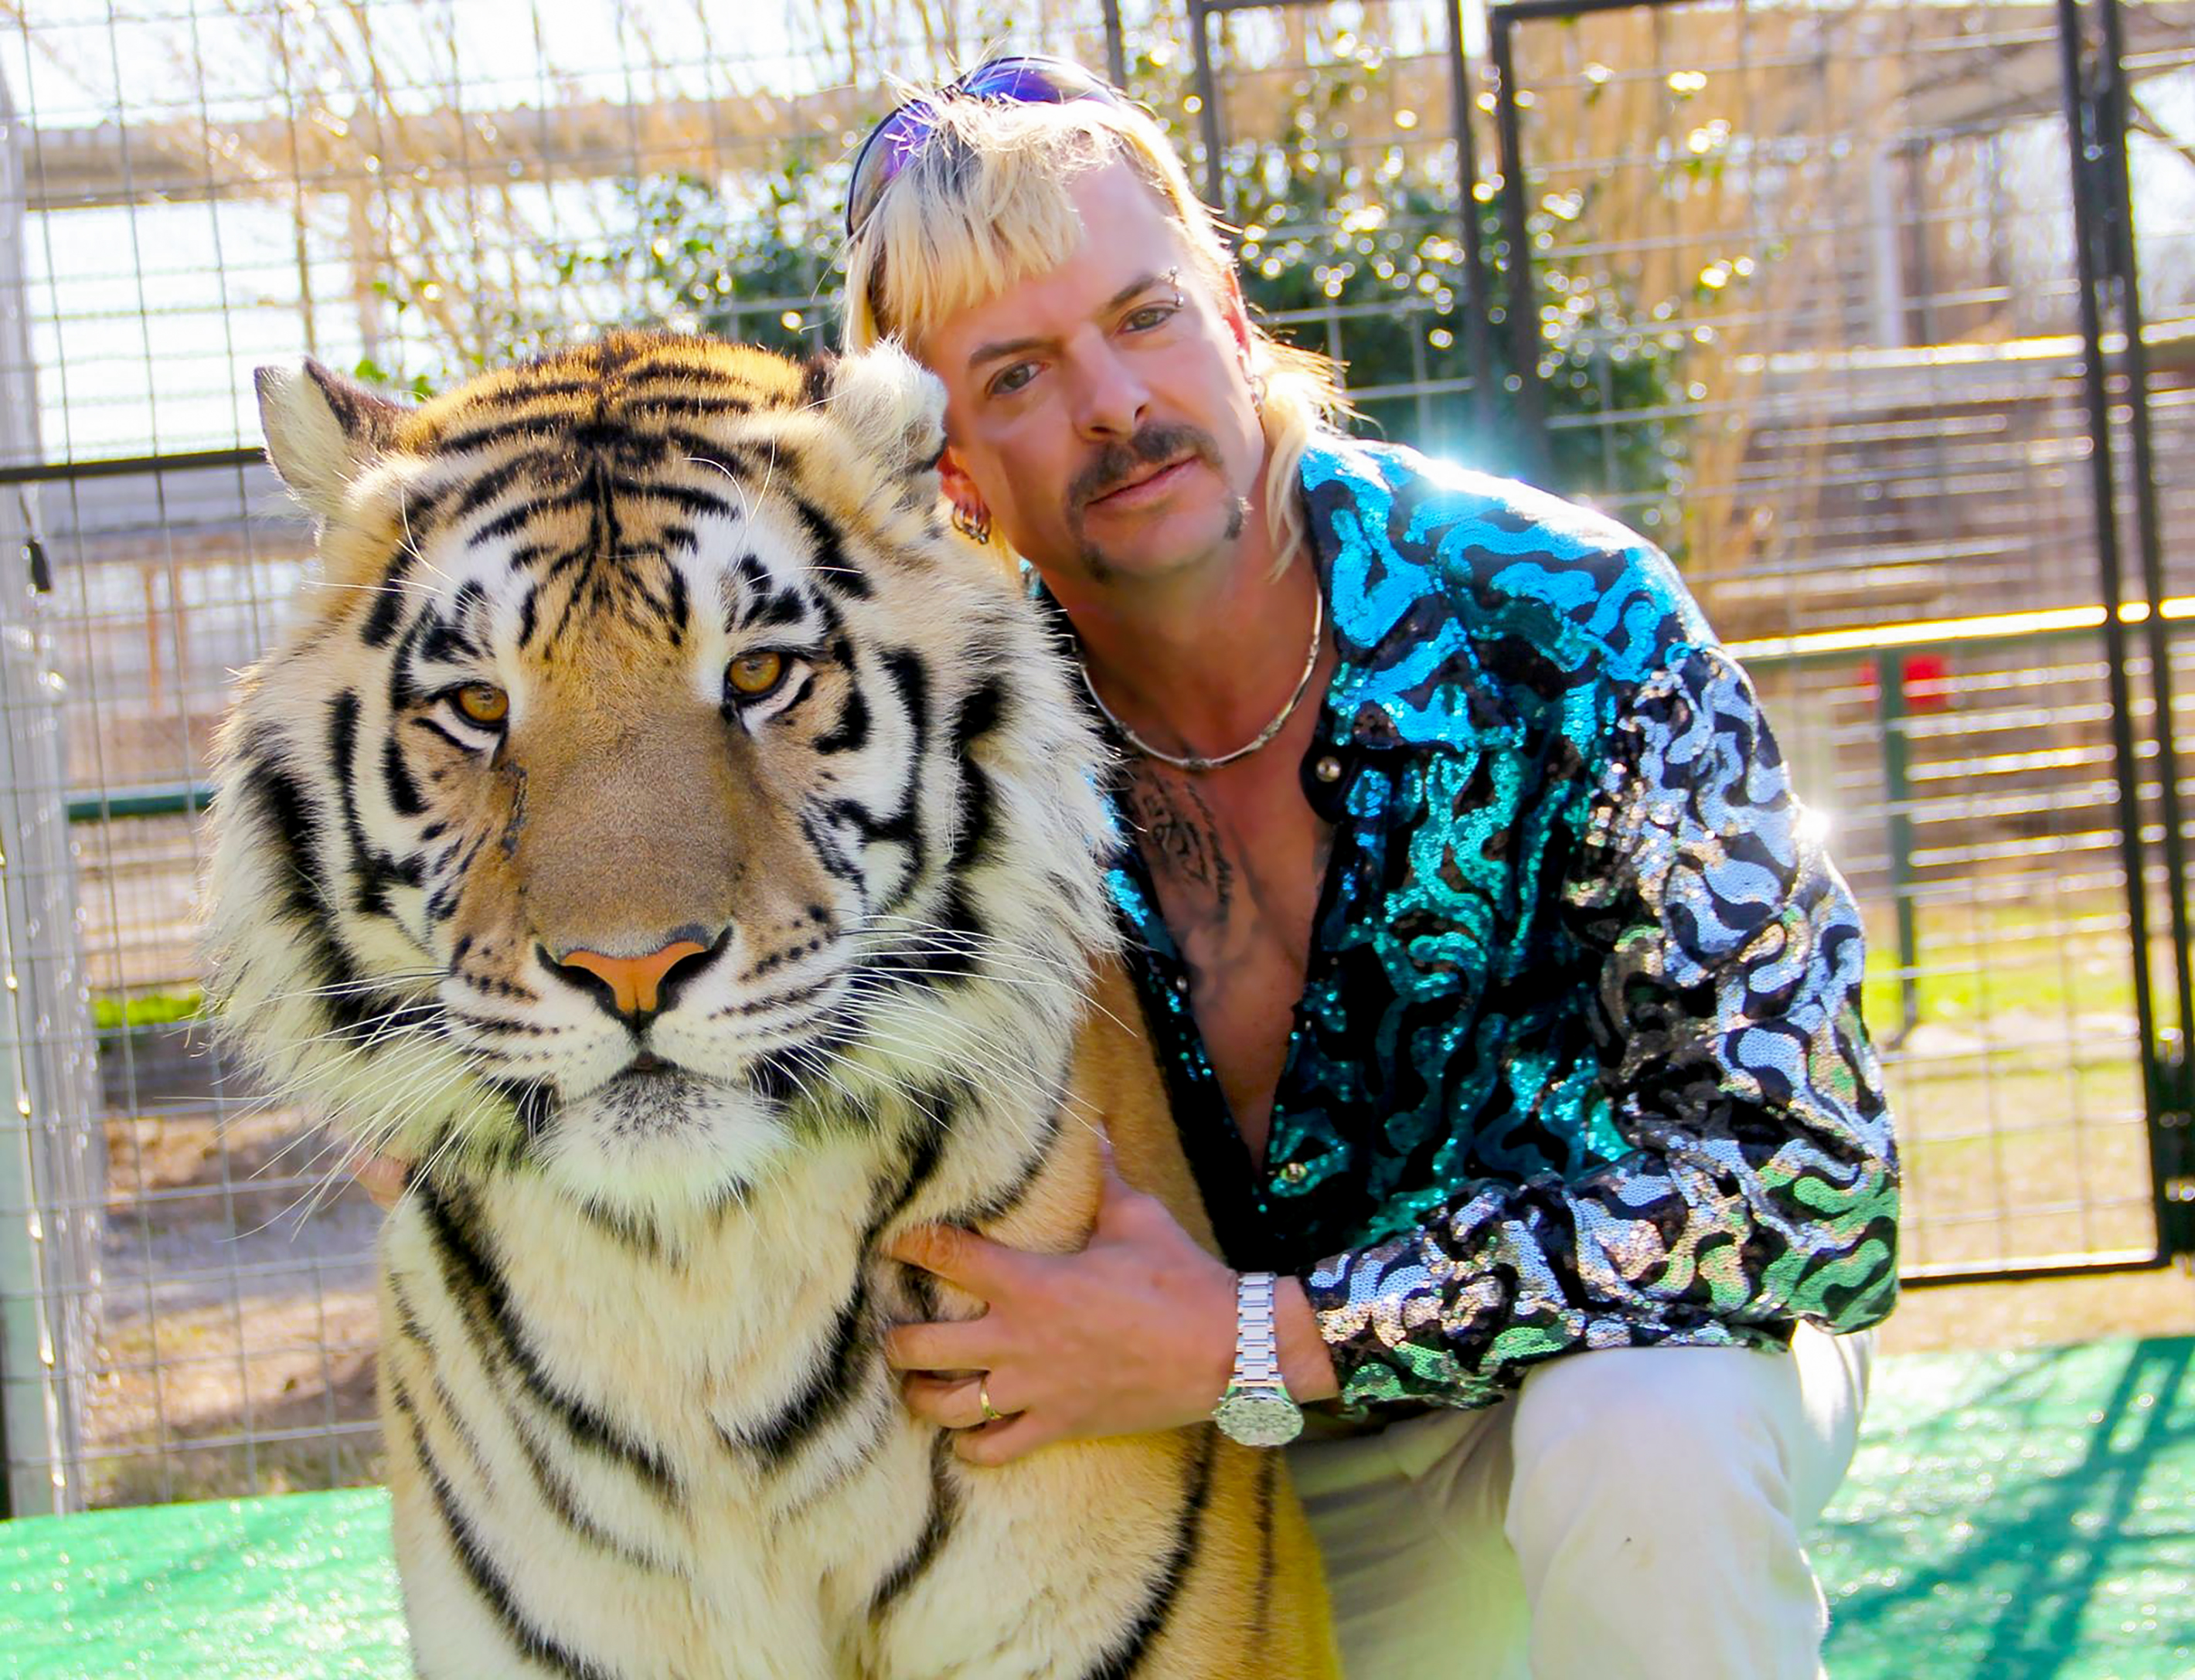 Joe Exotic in Tiger King: Murder, Mayhem and Madness (2020)